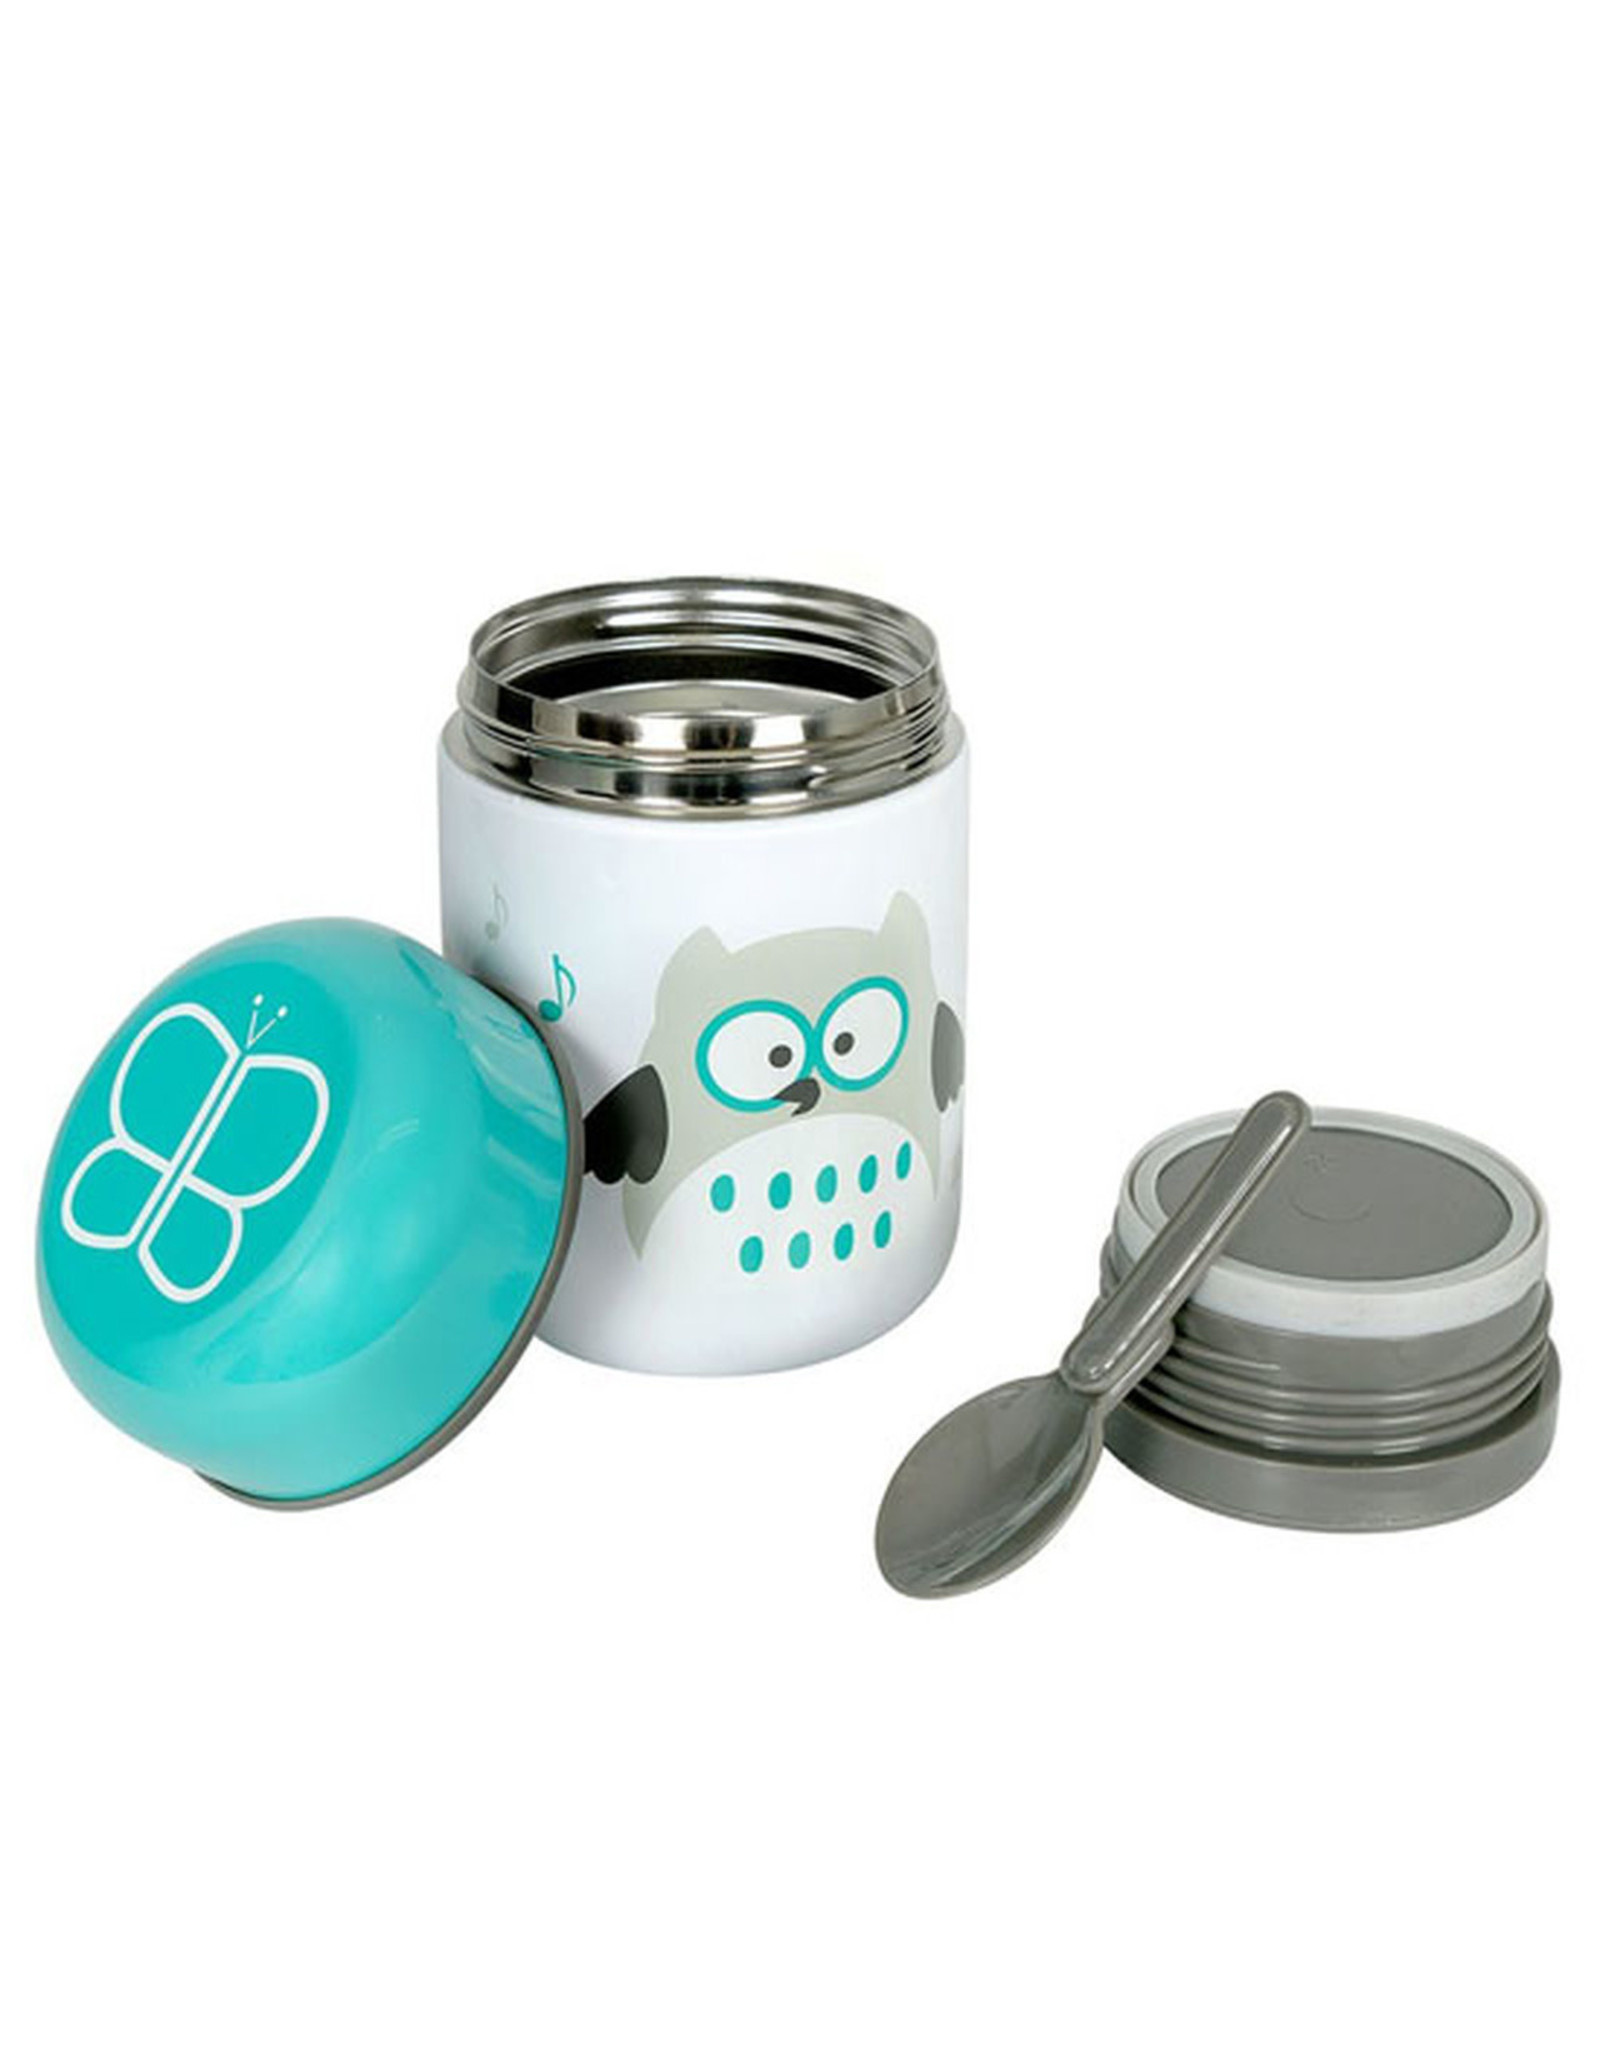 bbluv bbluv  Food, Thermal Food Container with Spoon, Aqua